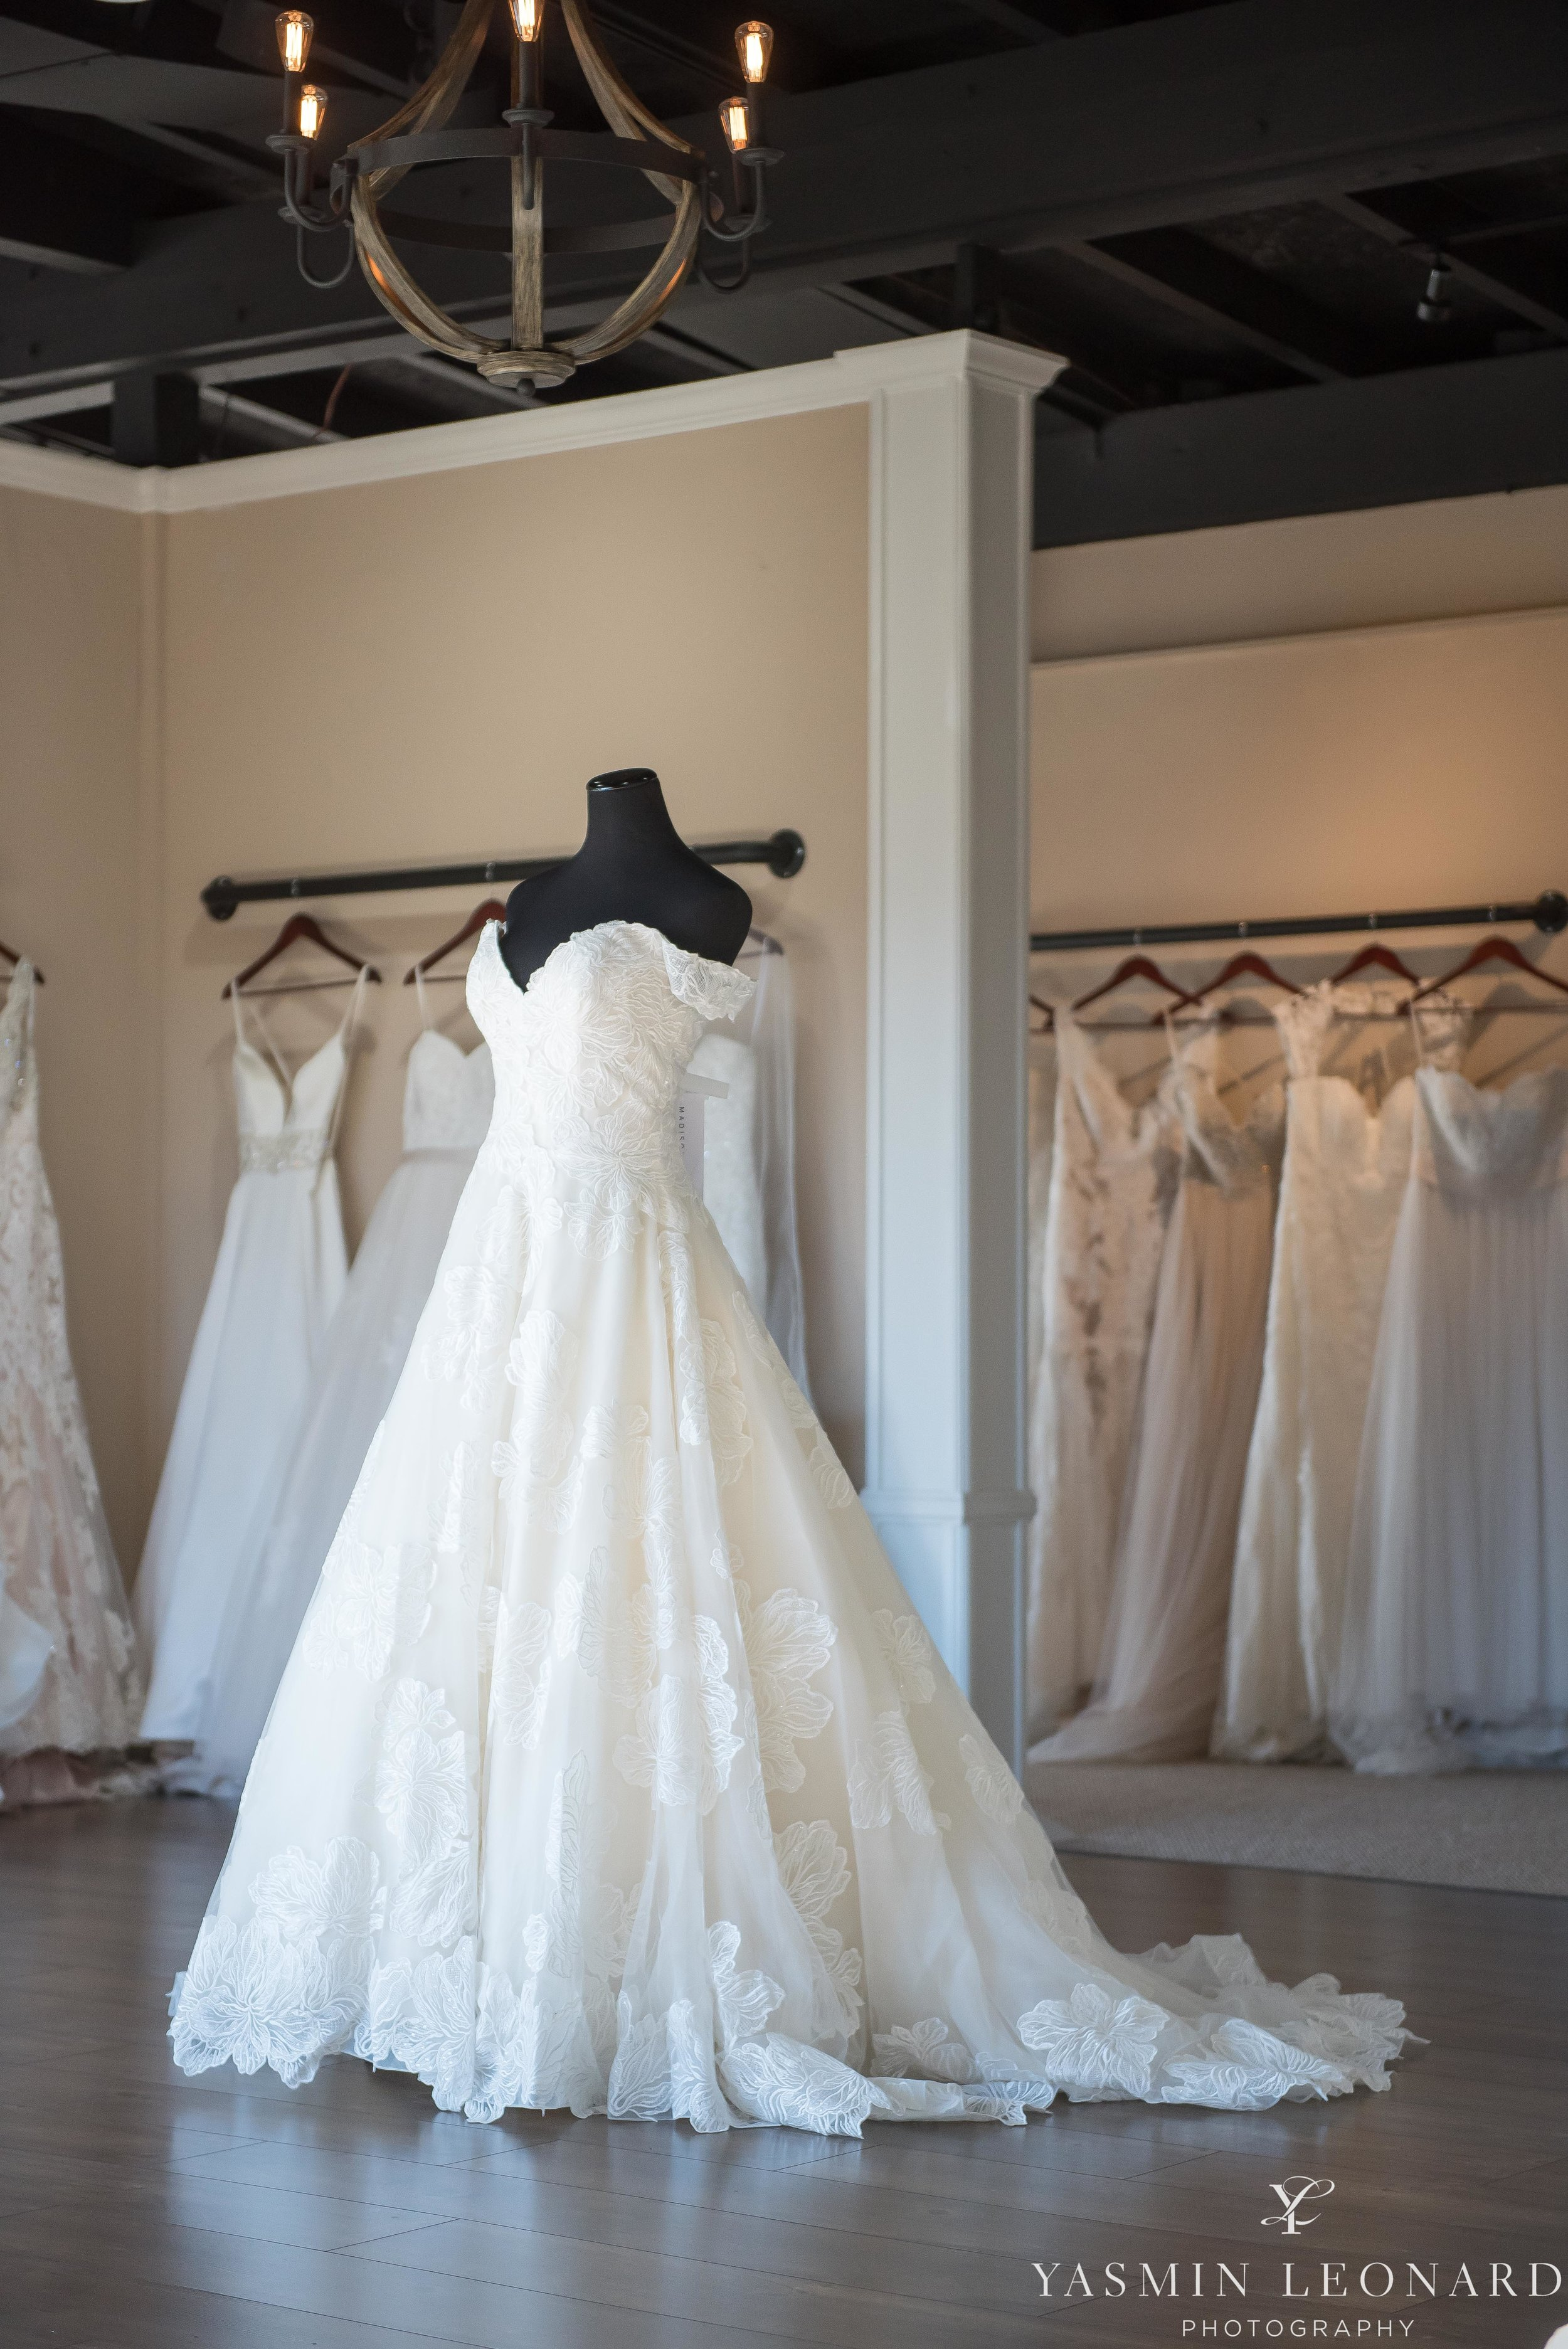 Dashing Dames Bridal and Boutique - High Point Bridal Shop - Bridal Store in High Point - Yasmin Leonard Photography-6.jpg